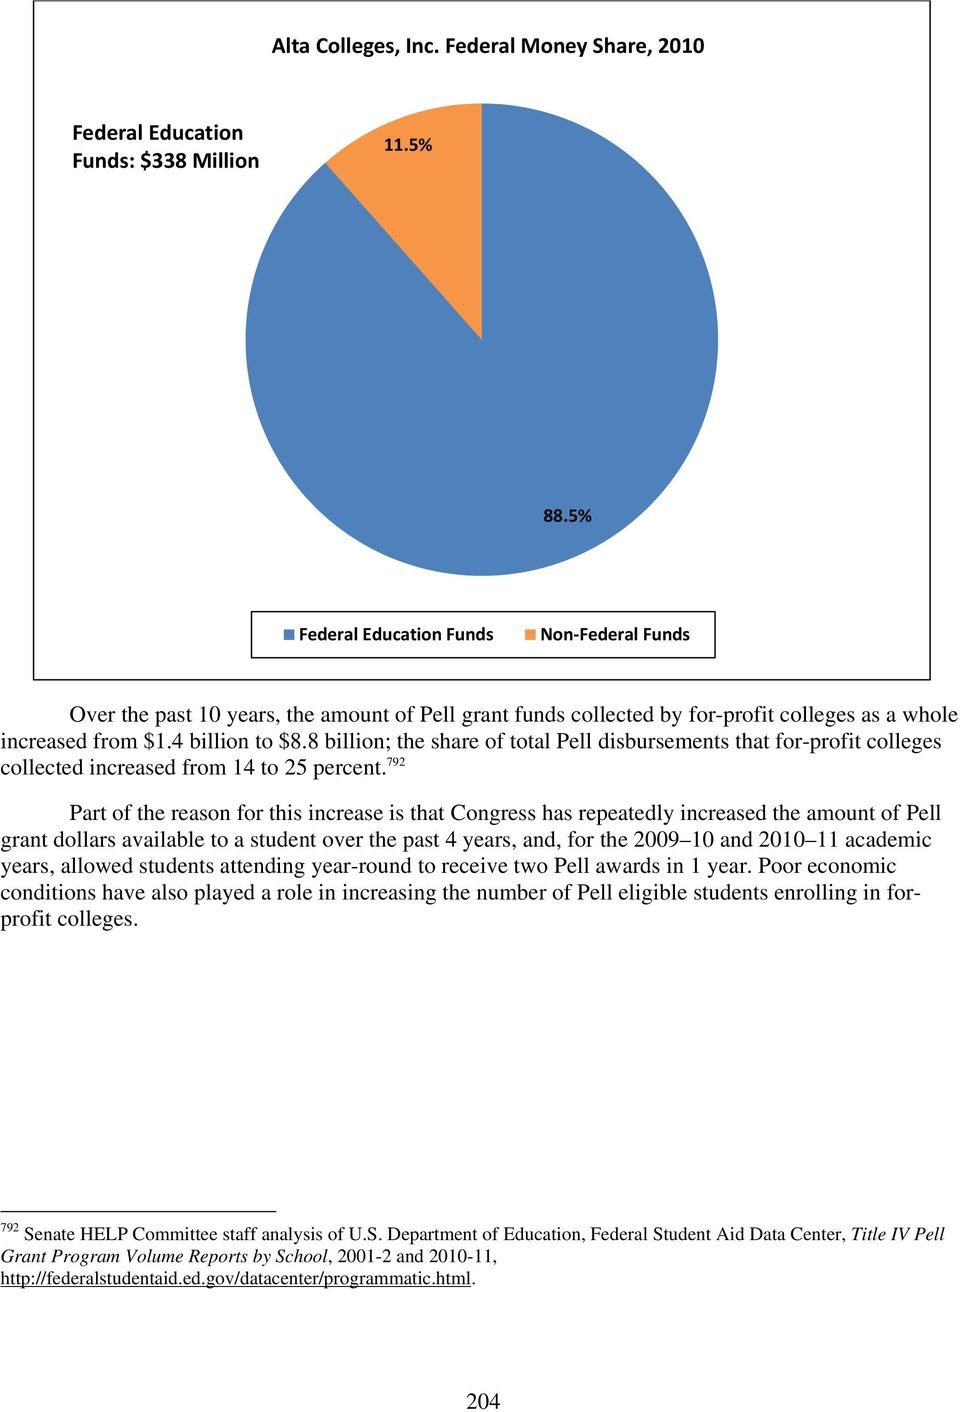 8 billion; the share of total Pell disbursements that for-profit colleges collected increased from 14 to 25 percent.